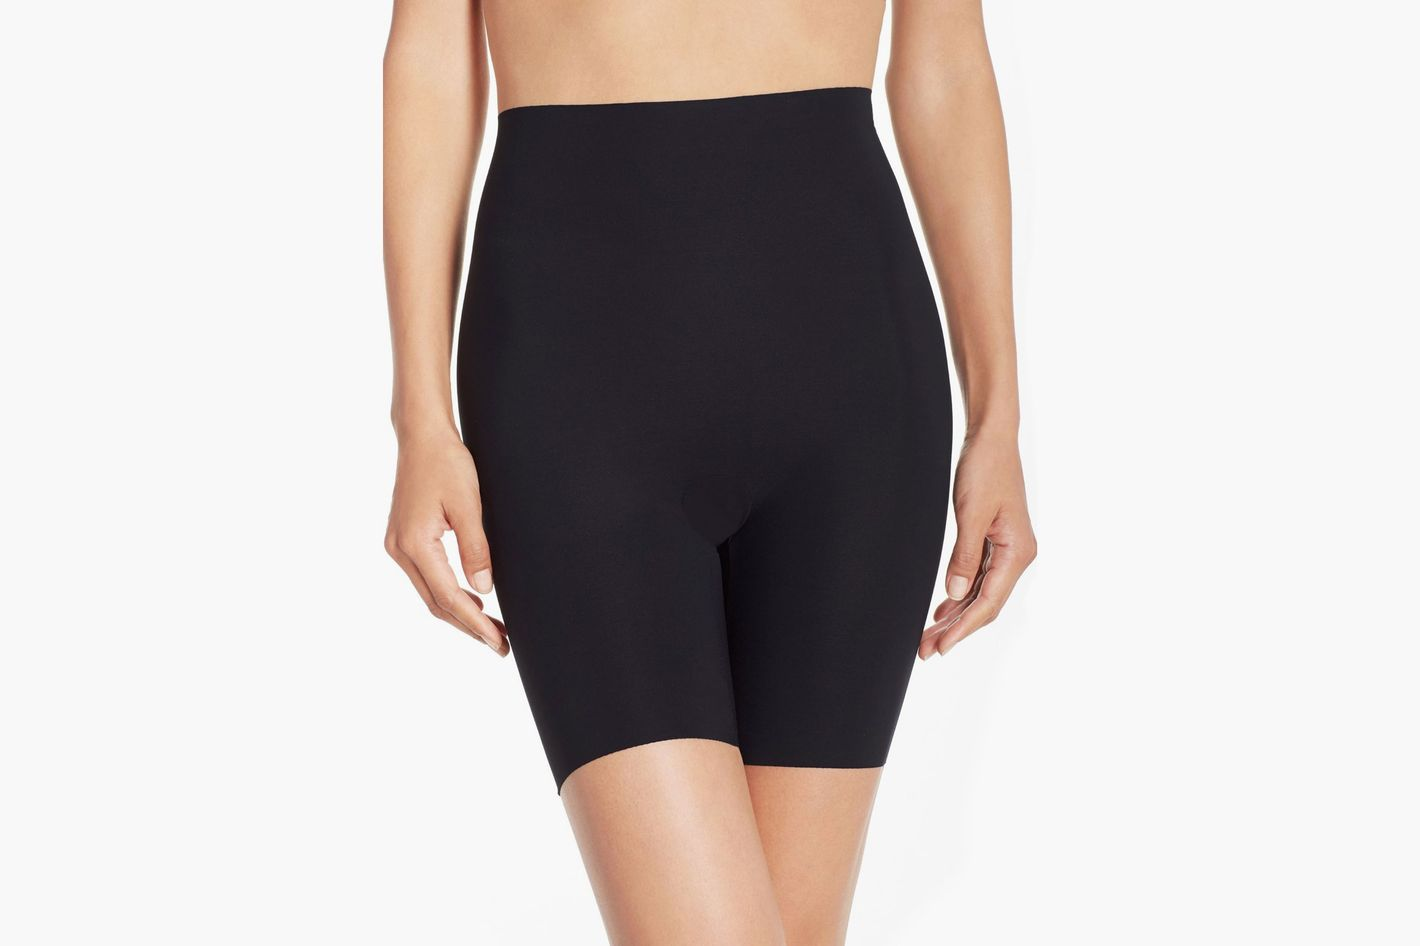 c210eef5e1 Commando Control High Waist Shaping Shorts at Nordstrom